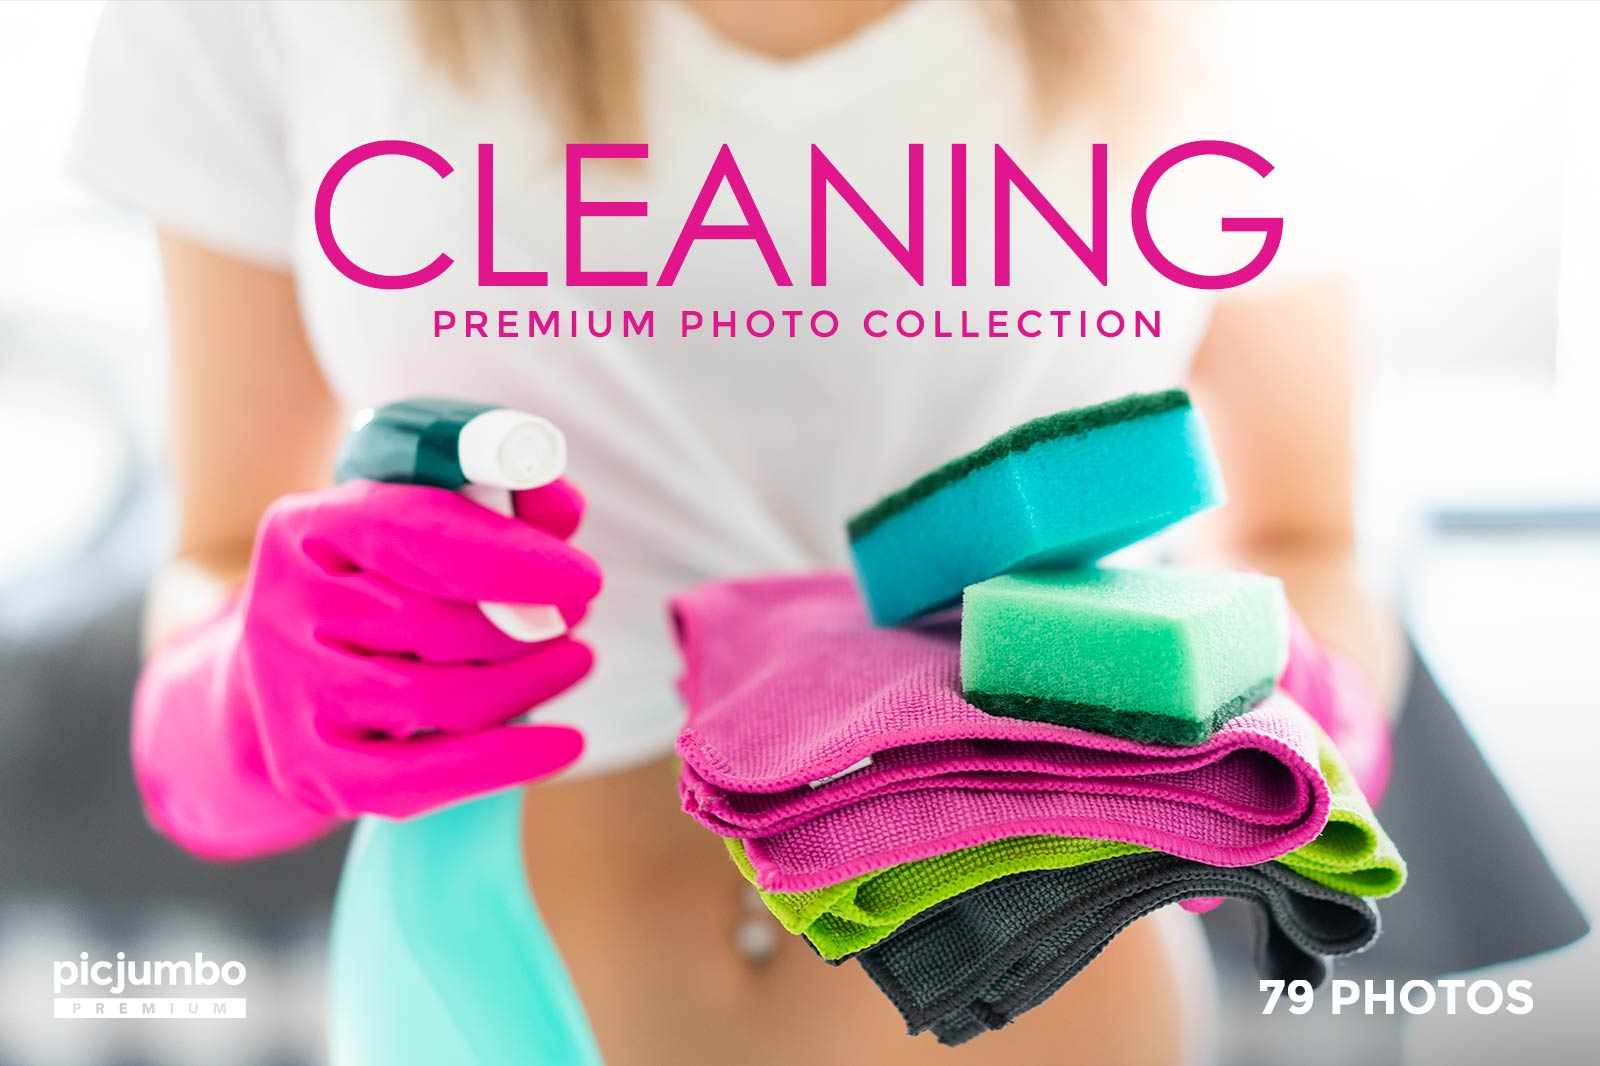 cleaning-stock-photo-collection.jpg